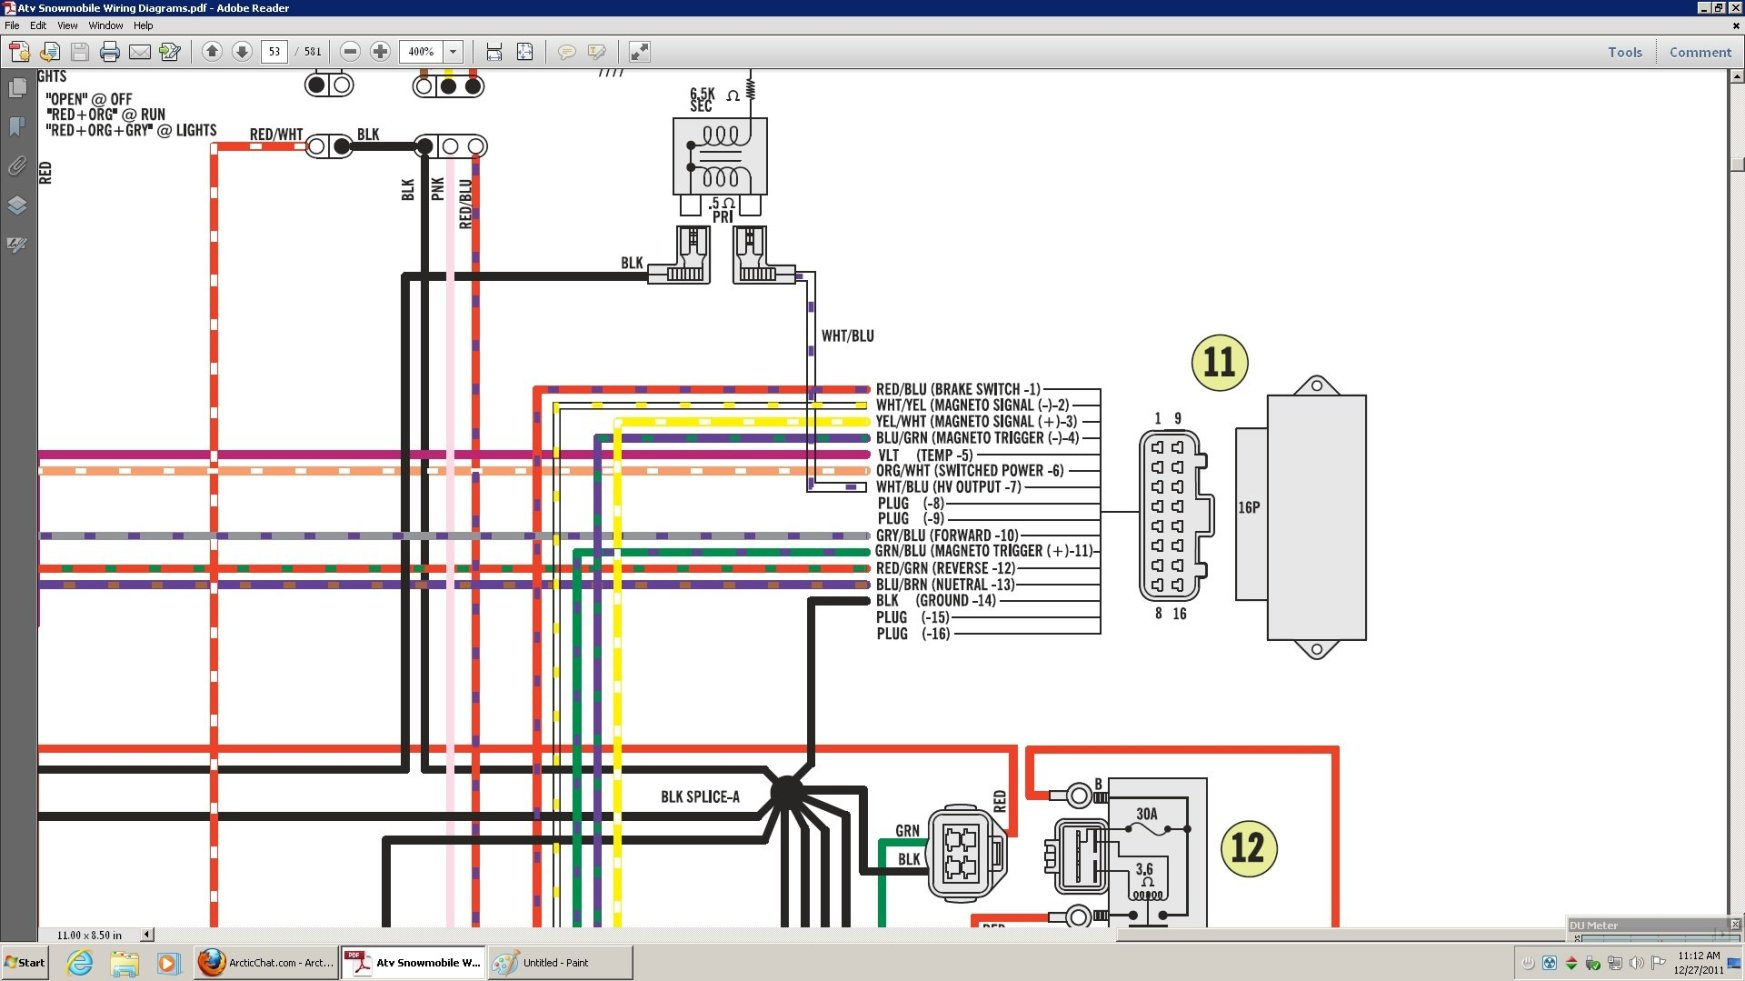 polaris predator wiring diagram polaris image polaris predator 50 wiring diagram wiring diagram on polaris predator wiring diagram